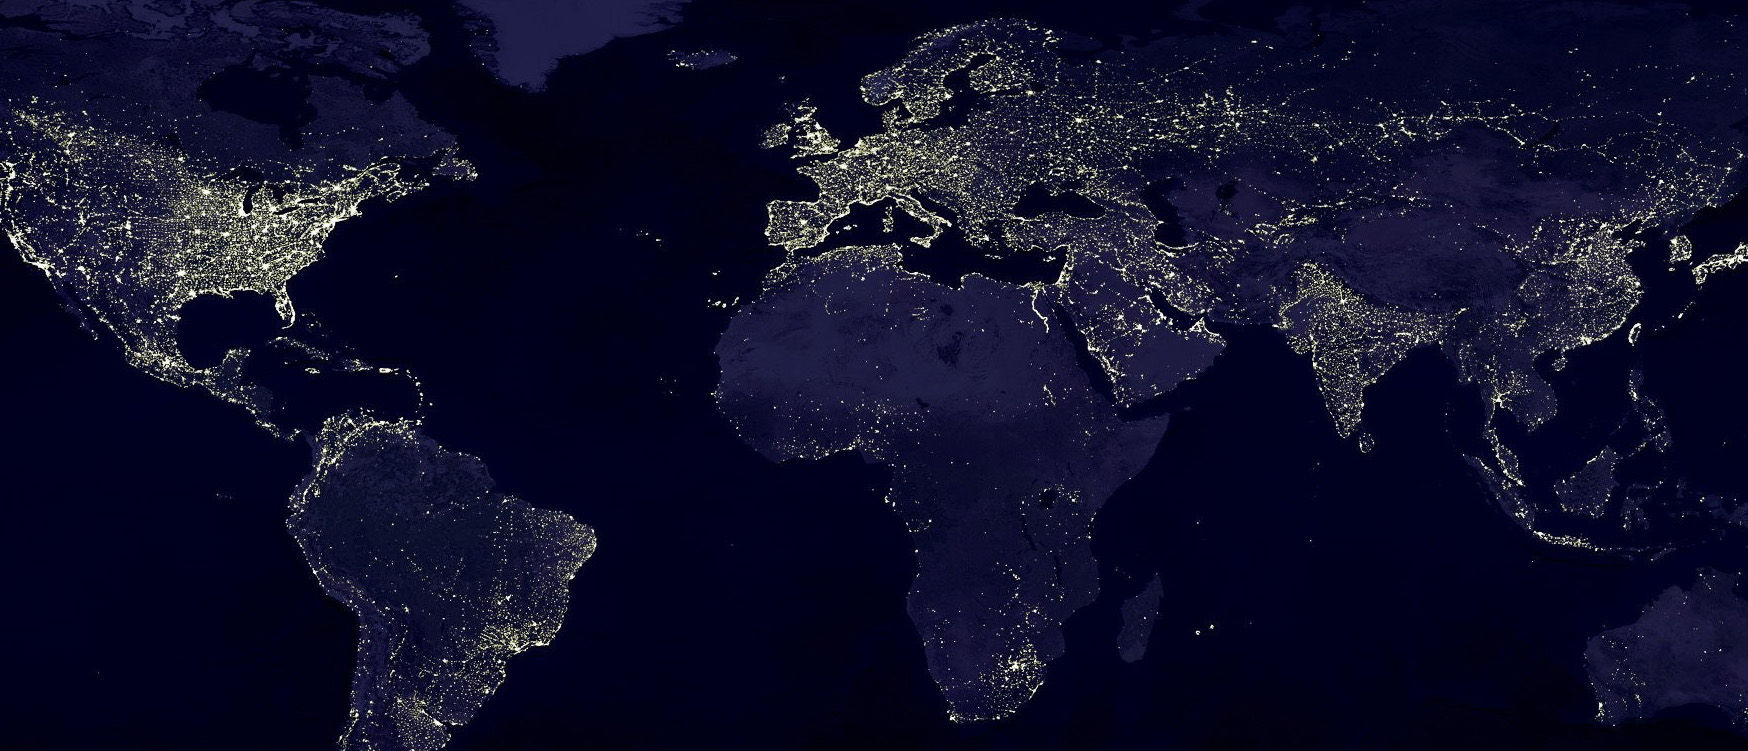 Stock photograph of a world map with lights at night